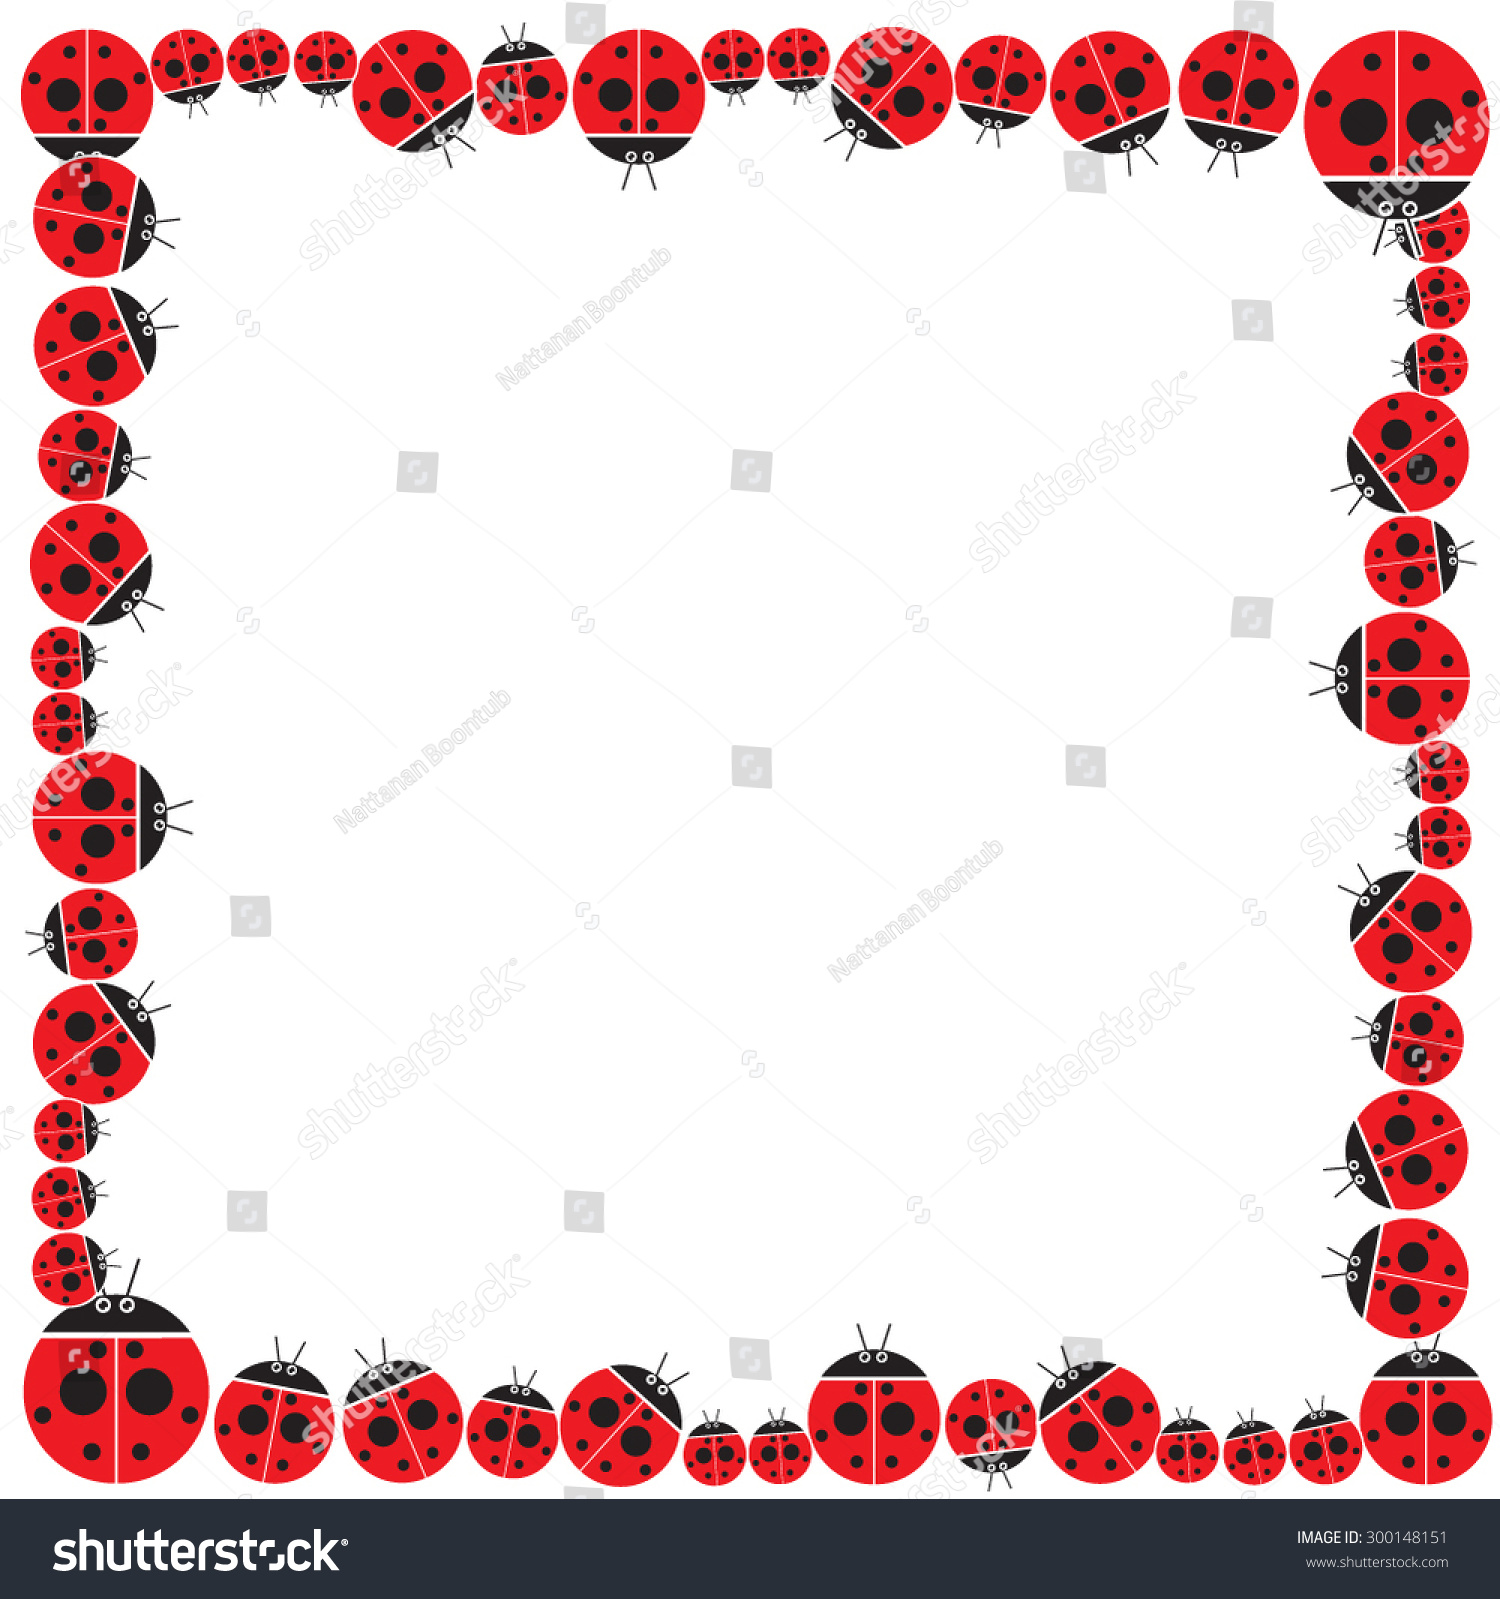 Ladybug Frame Design Vector Border Stock Vector (Royalty Free ...